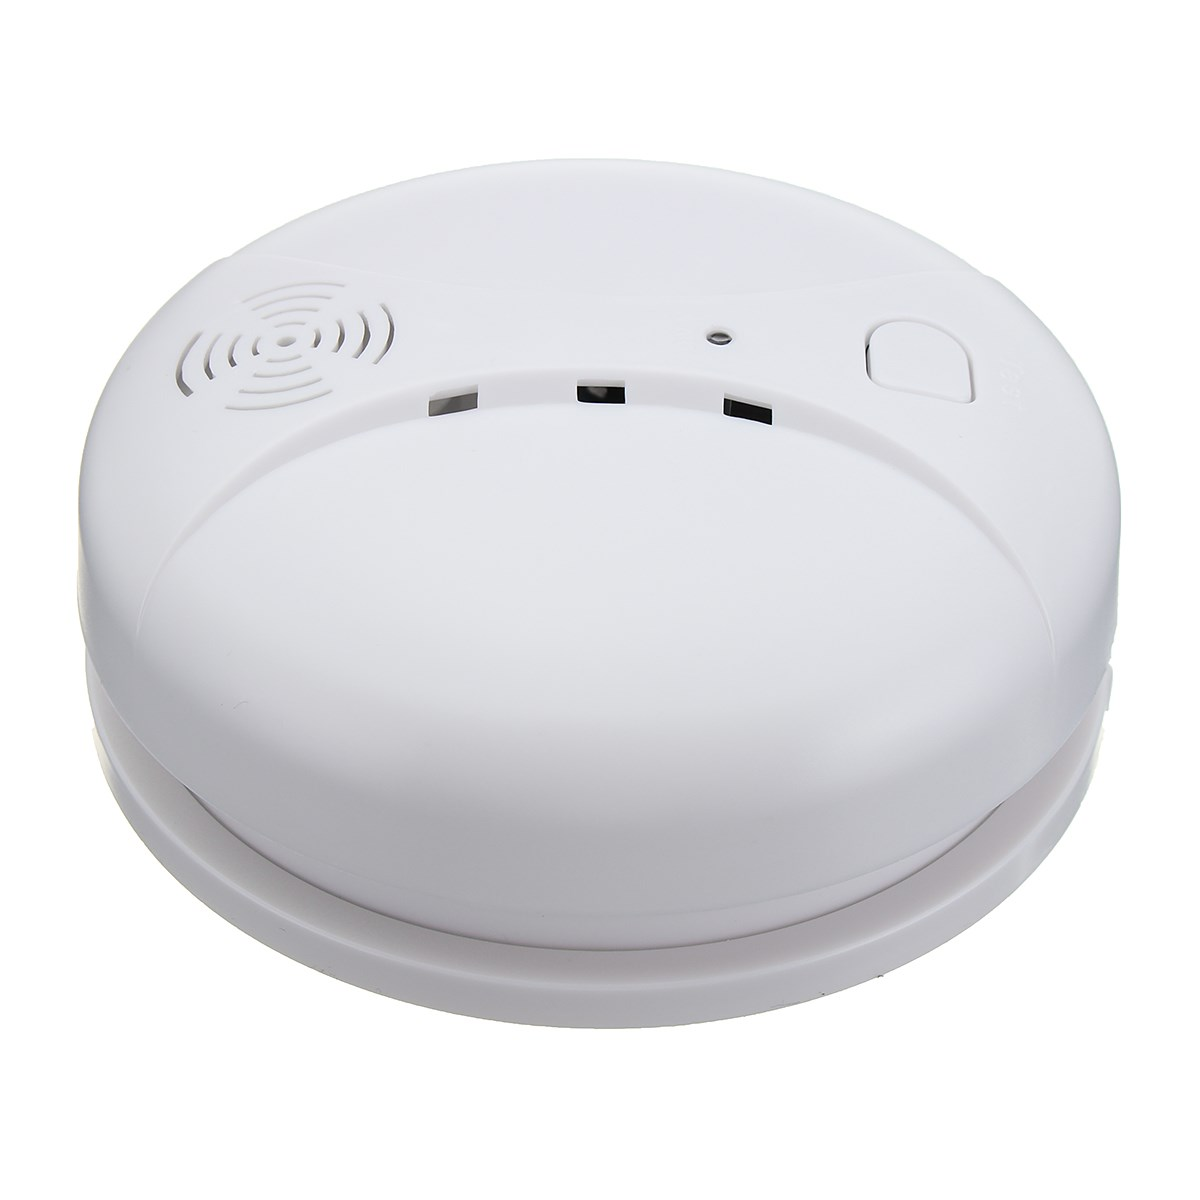 NEW Safurance Wireless Fire Smoke Detector WIFI Home Security Smoke Alarm Sensor High Sensitive Warning wireless smoke fire detector smoke alarm for touch keypad panel wifi gsm home security system without battery